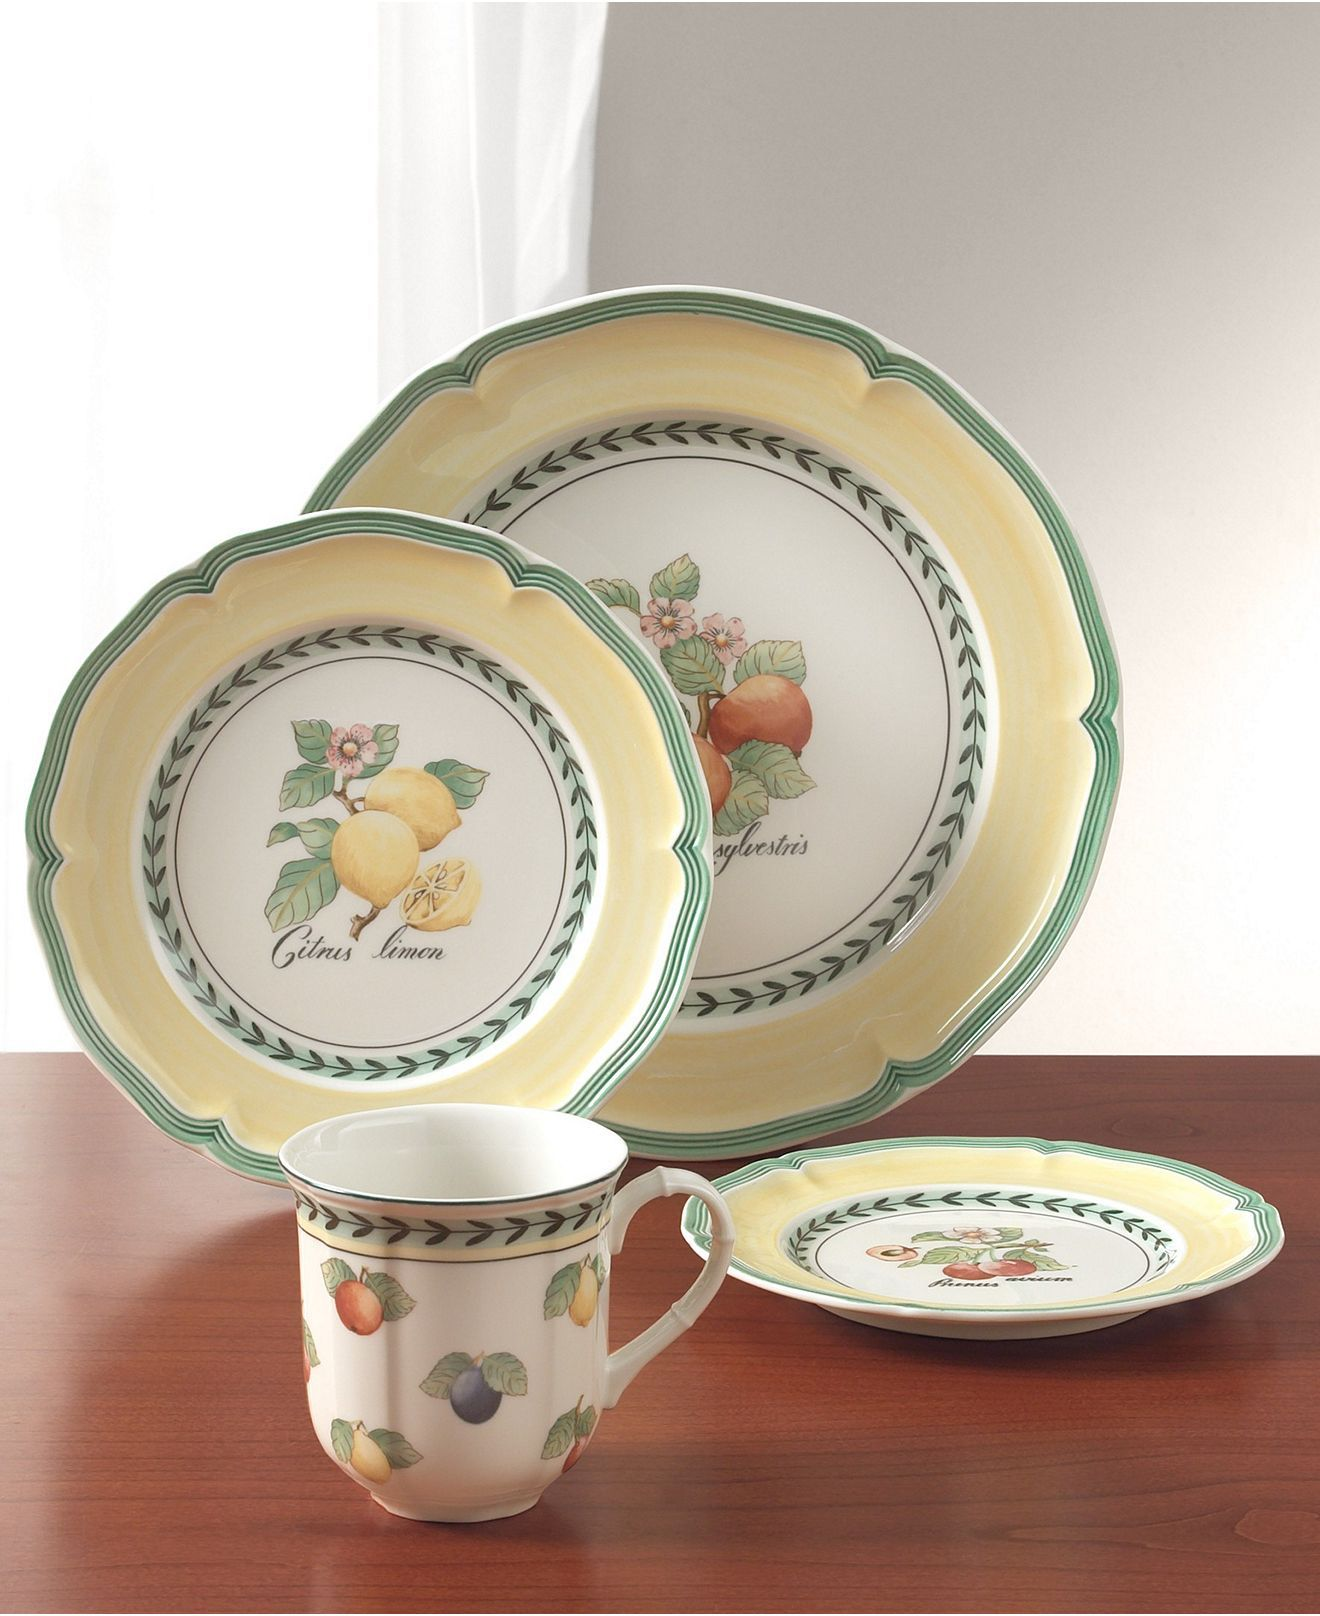 Merveilleux Villeroy U0026 Boch Dinnerware, French Garden Collection   Casual Dinnerware    Dining U0026 Entertaining   Macys Like This For An Everyday Set Of China